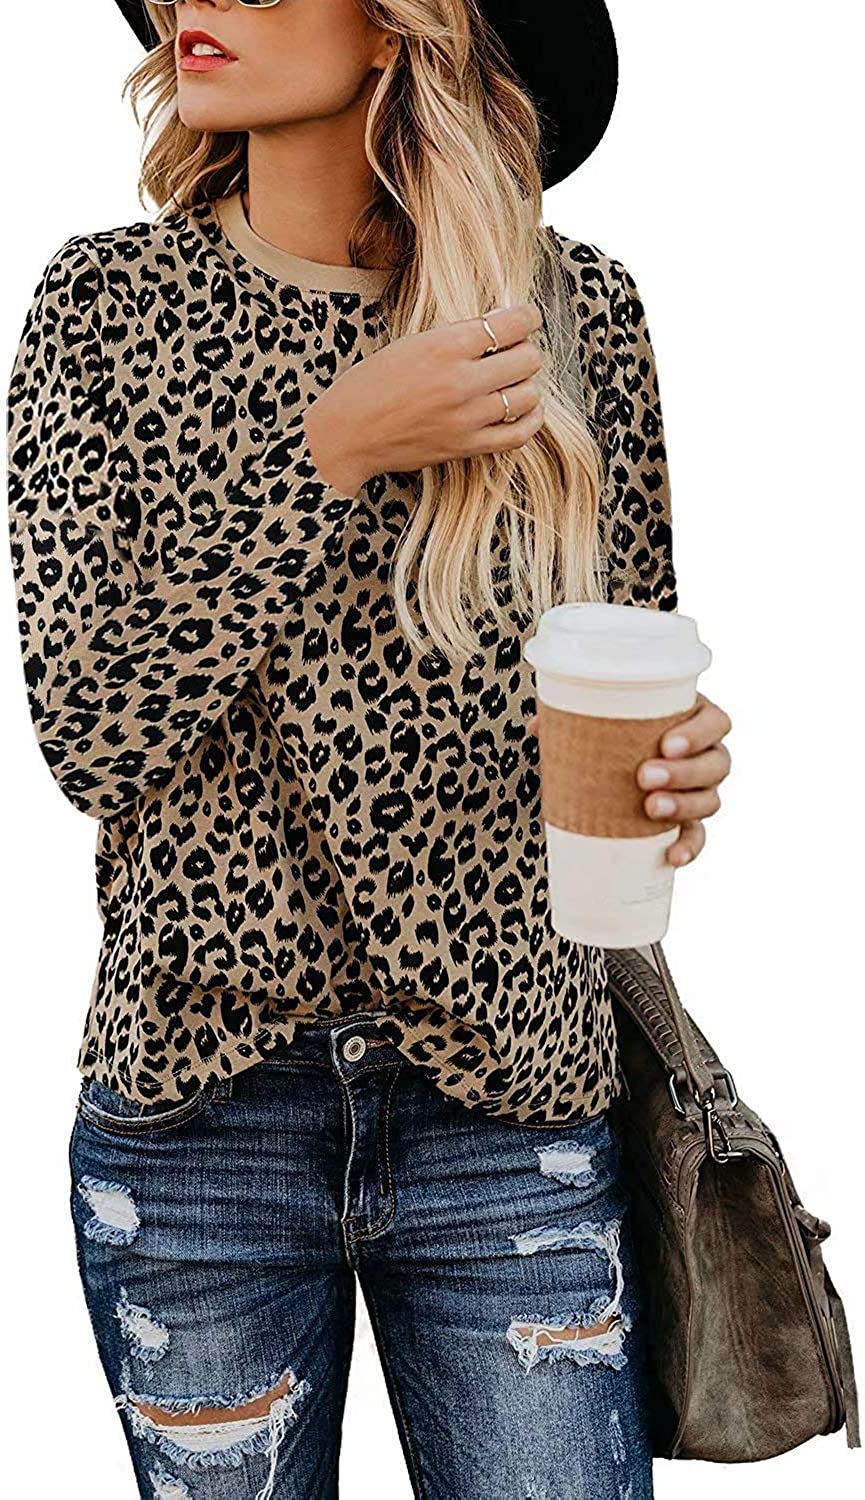 Women's Casual Cute Blouse and Top Leopard Print Basic Long Sleeve Soft Shirt